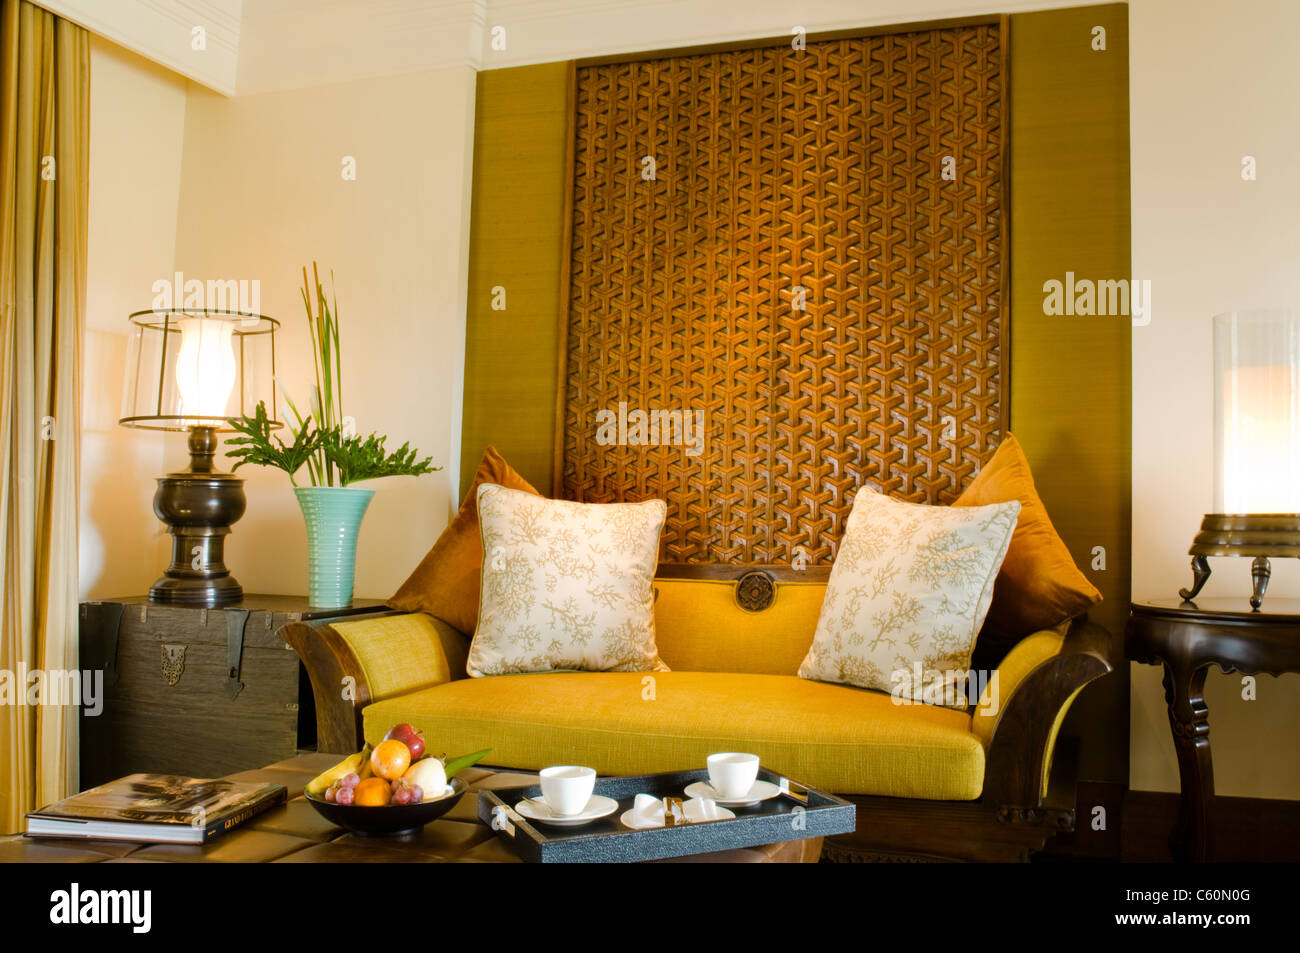 Contemporary living area resort hotel suite room with fruits and tea - Stock Image